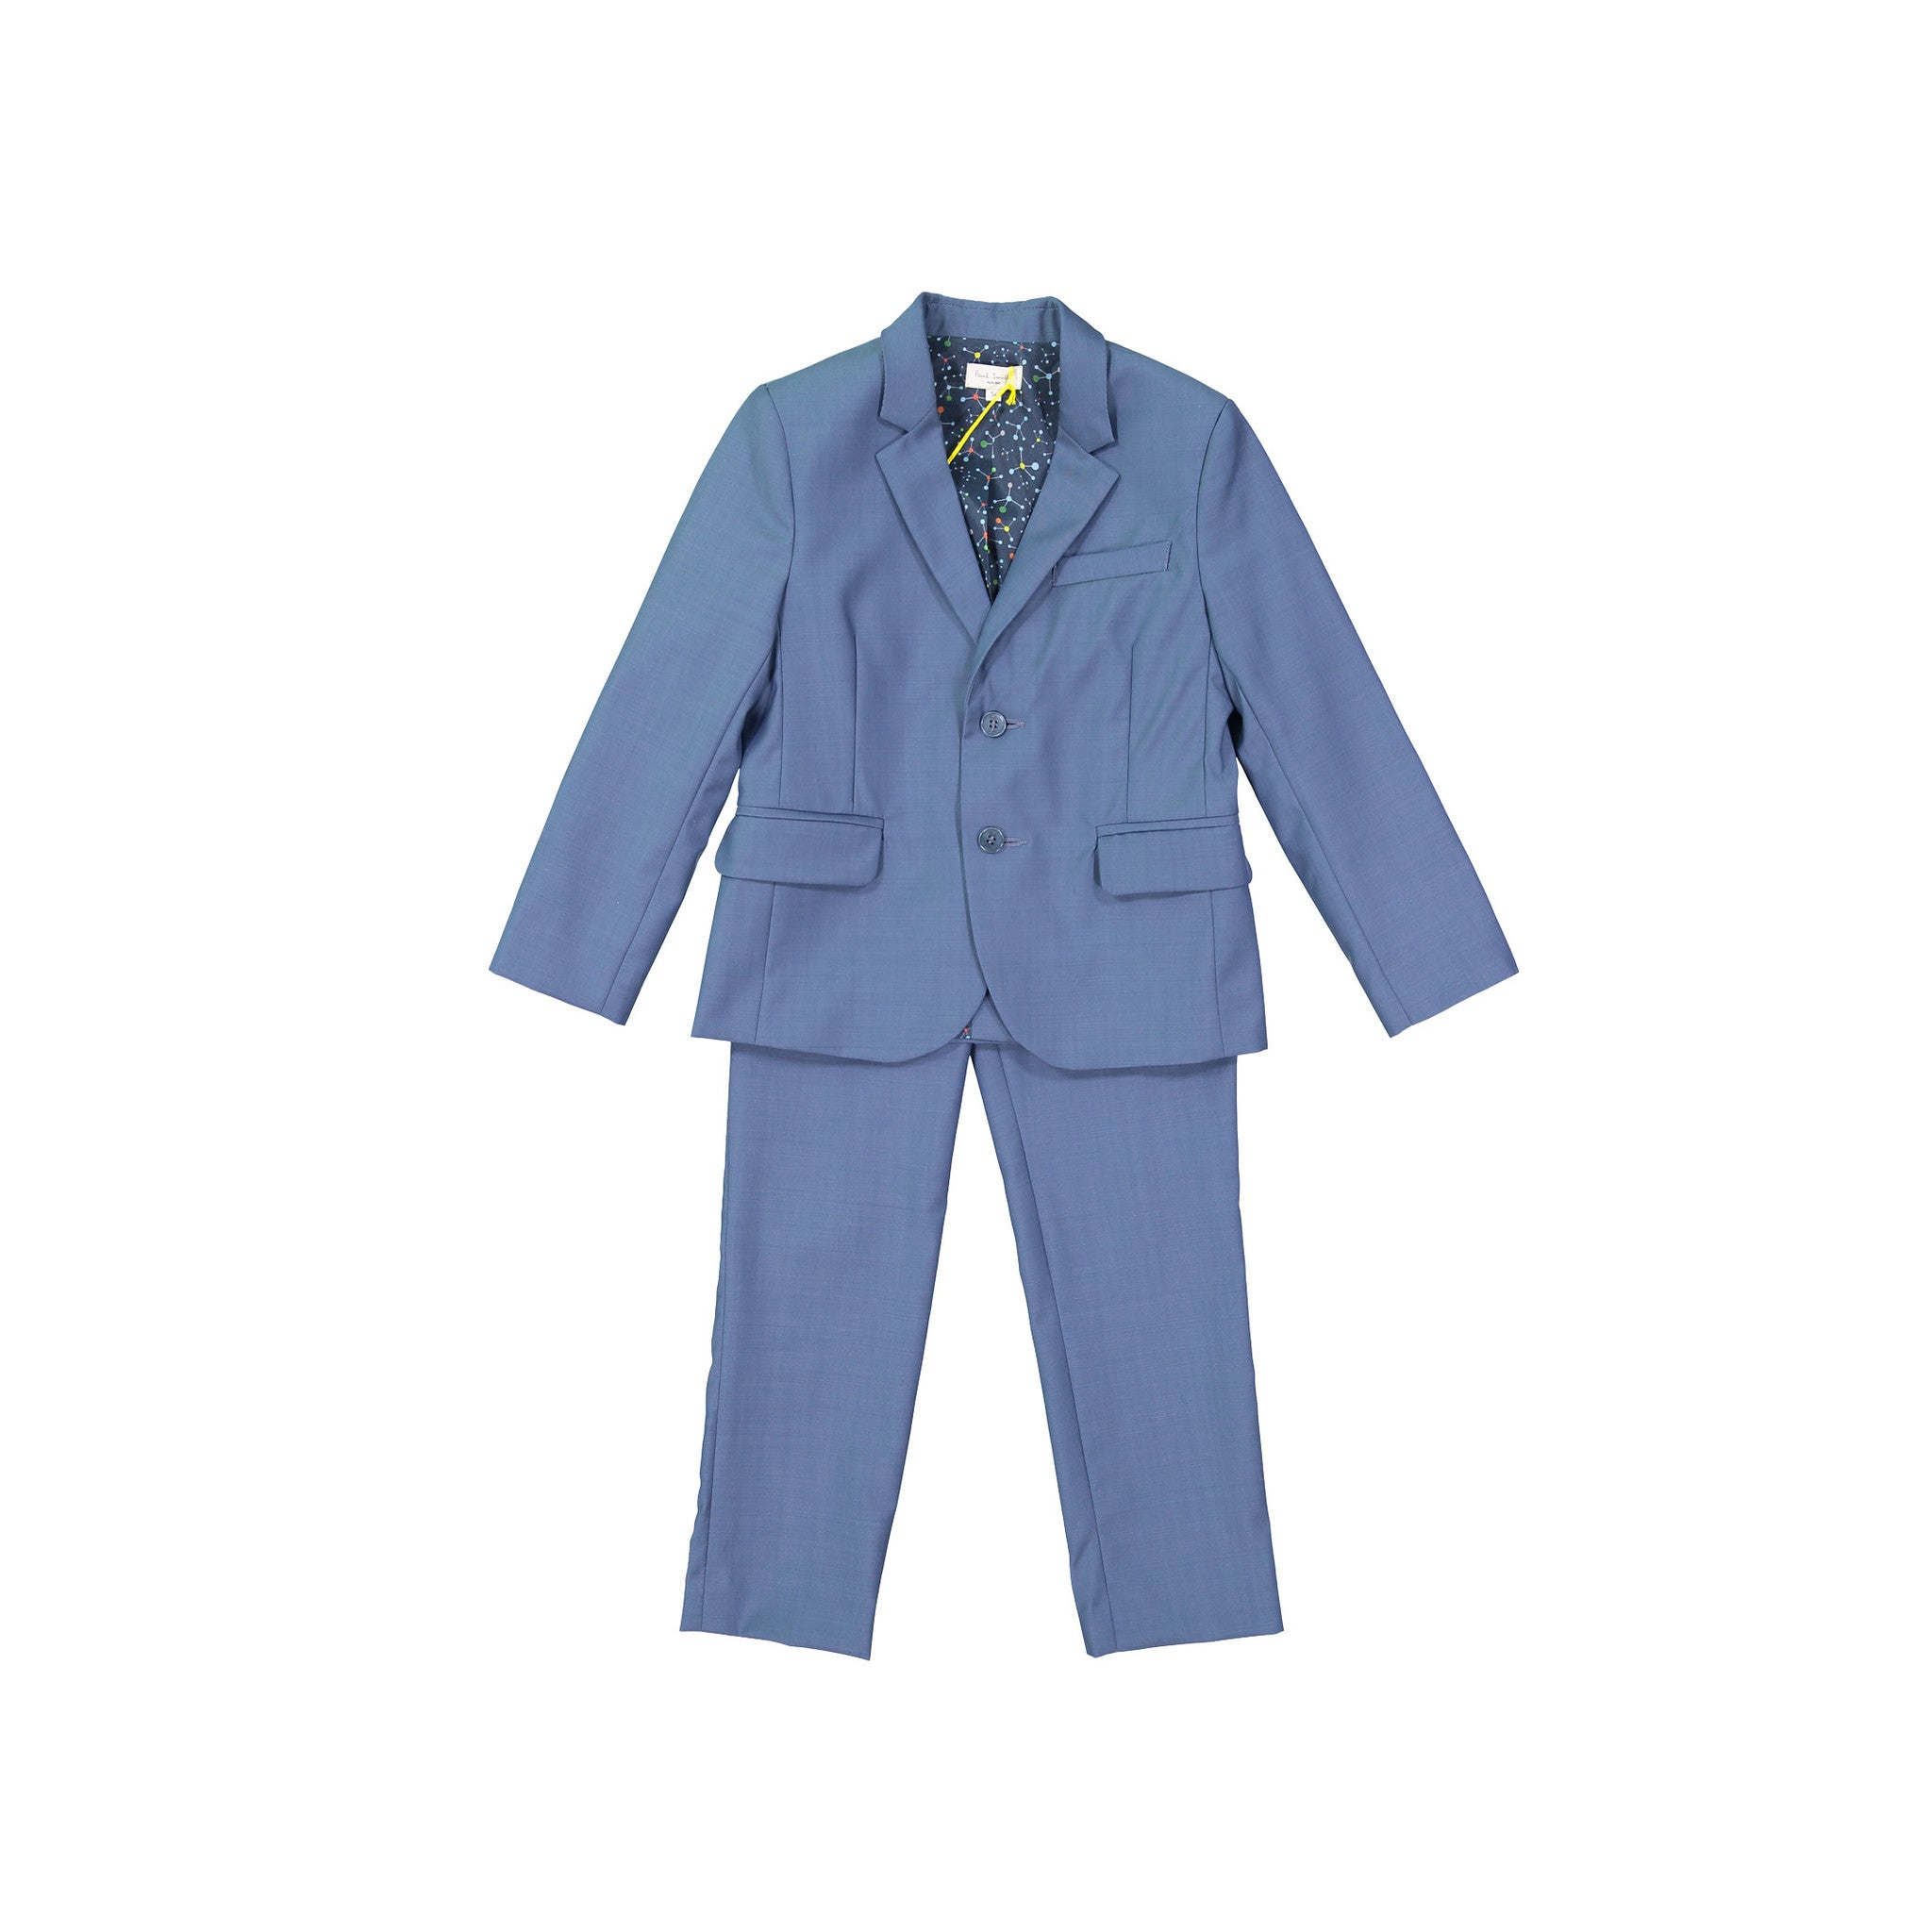 Paul Smith Chambray Suit - Ladida